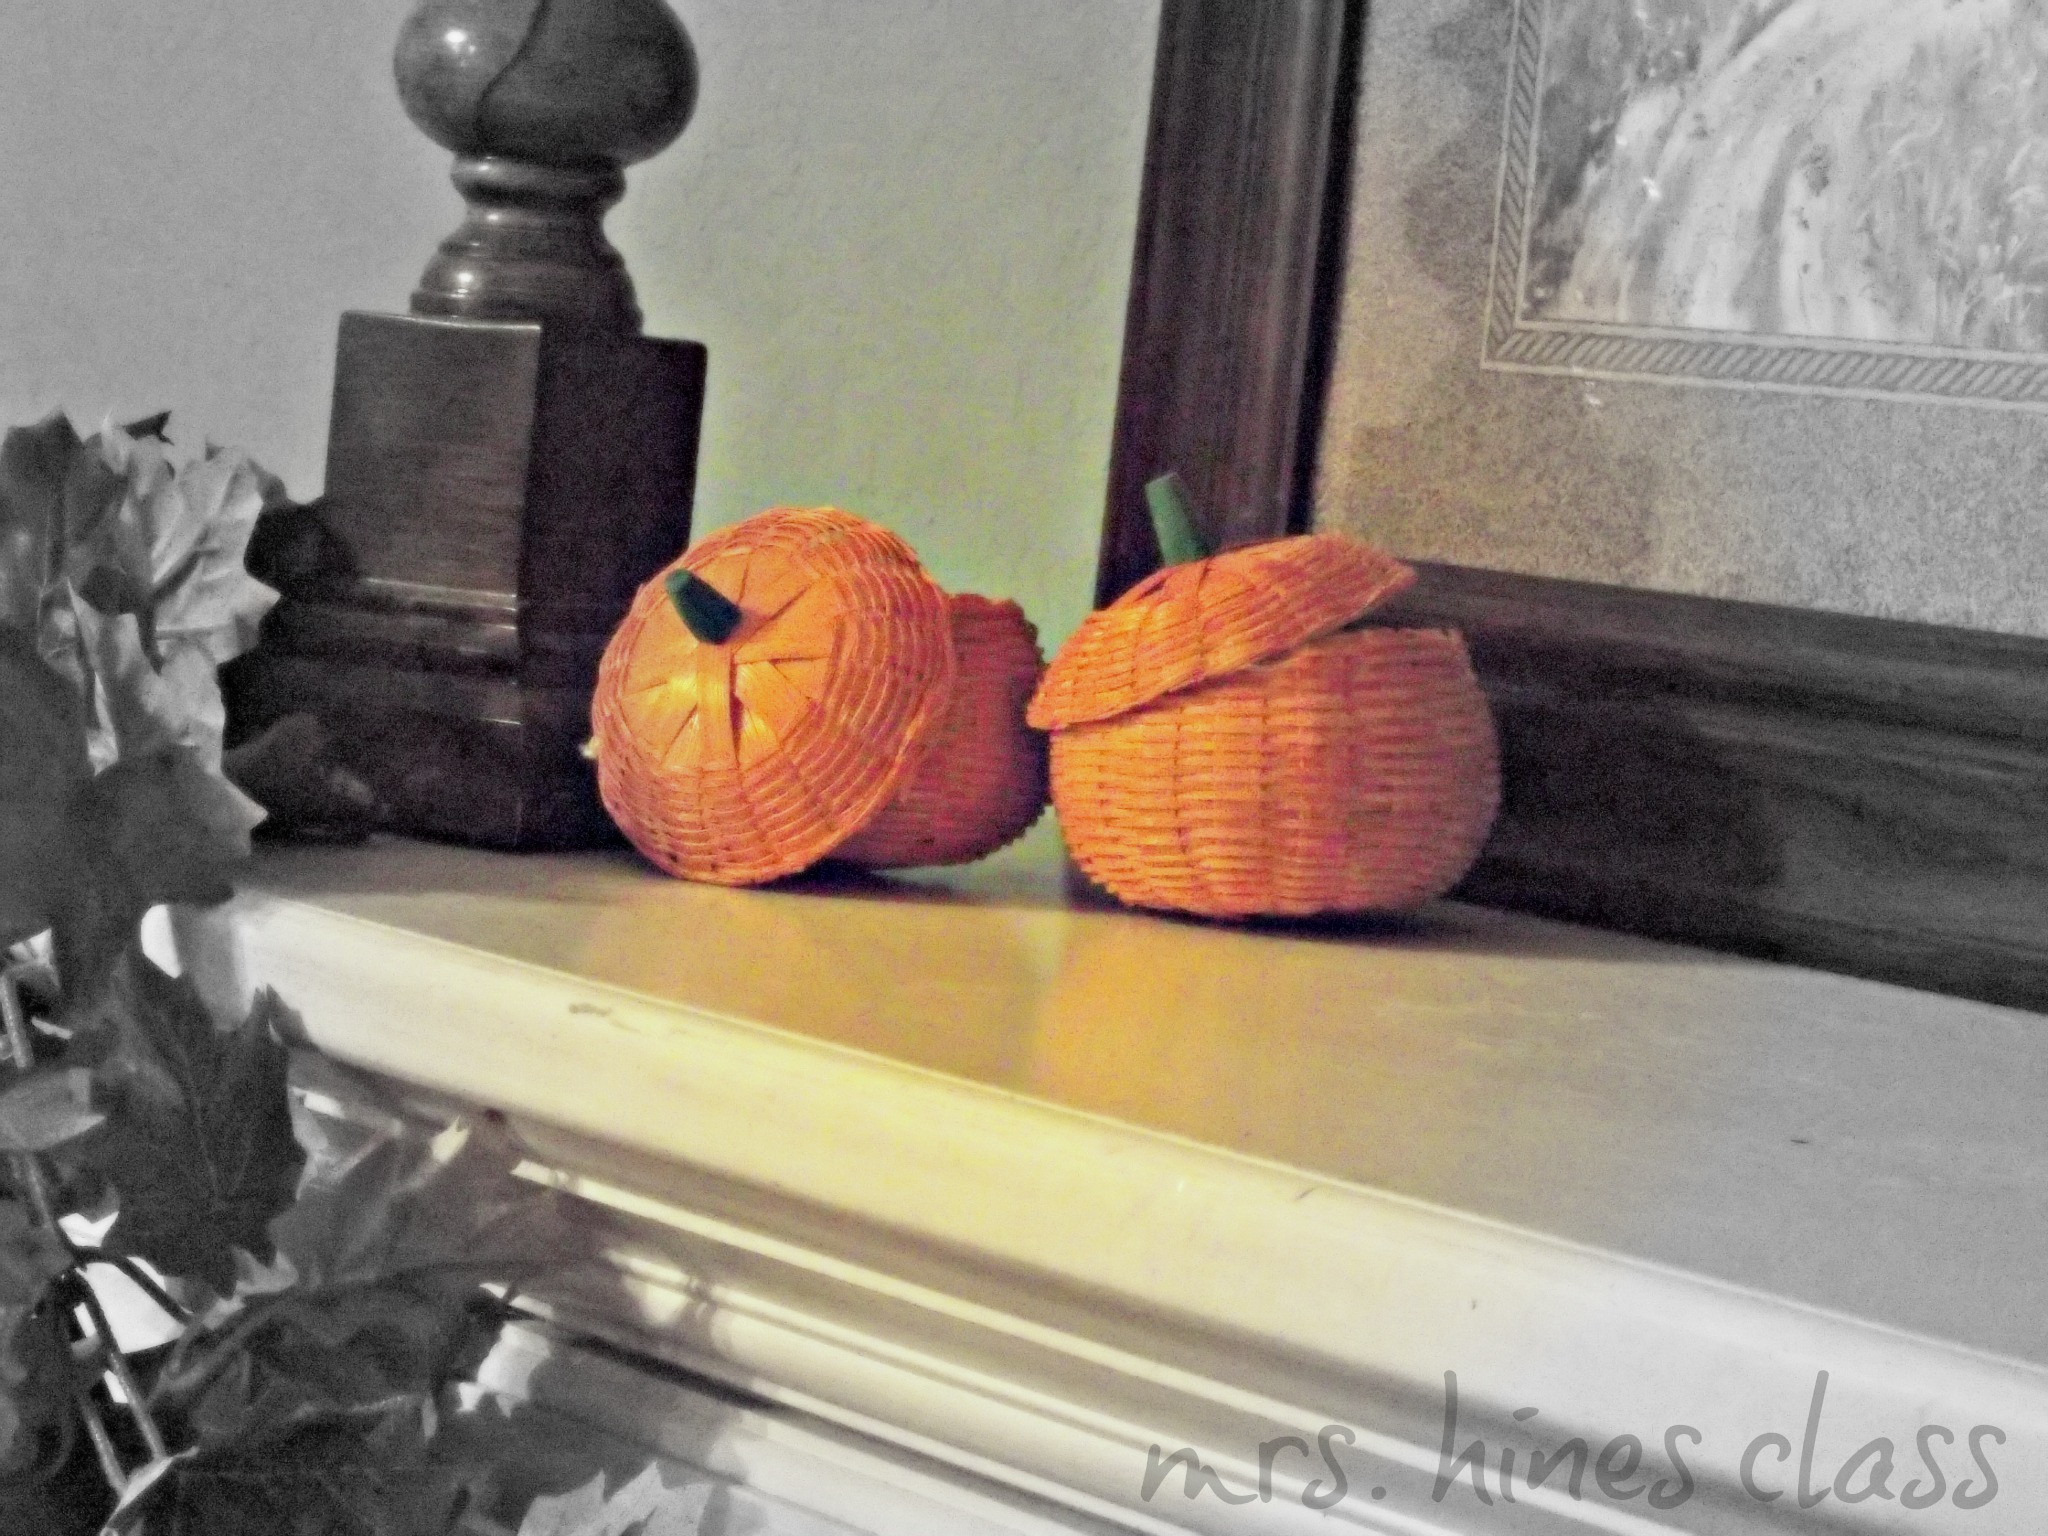 rattan pumpkins, mantel, candles, candlesticks, barley twist, garland, leaves, fall, art, fireplace